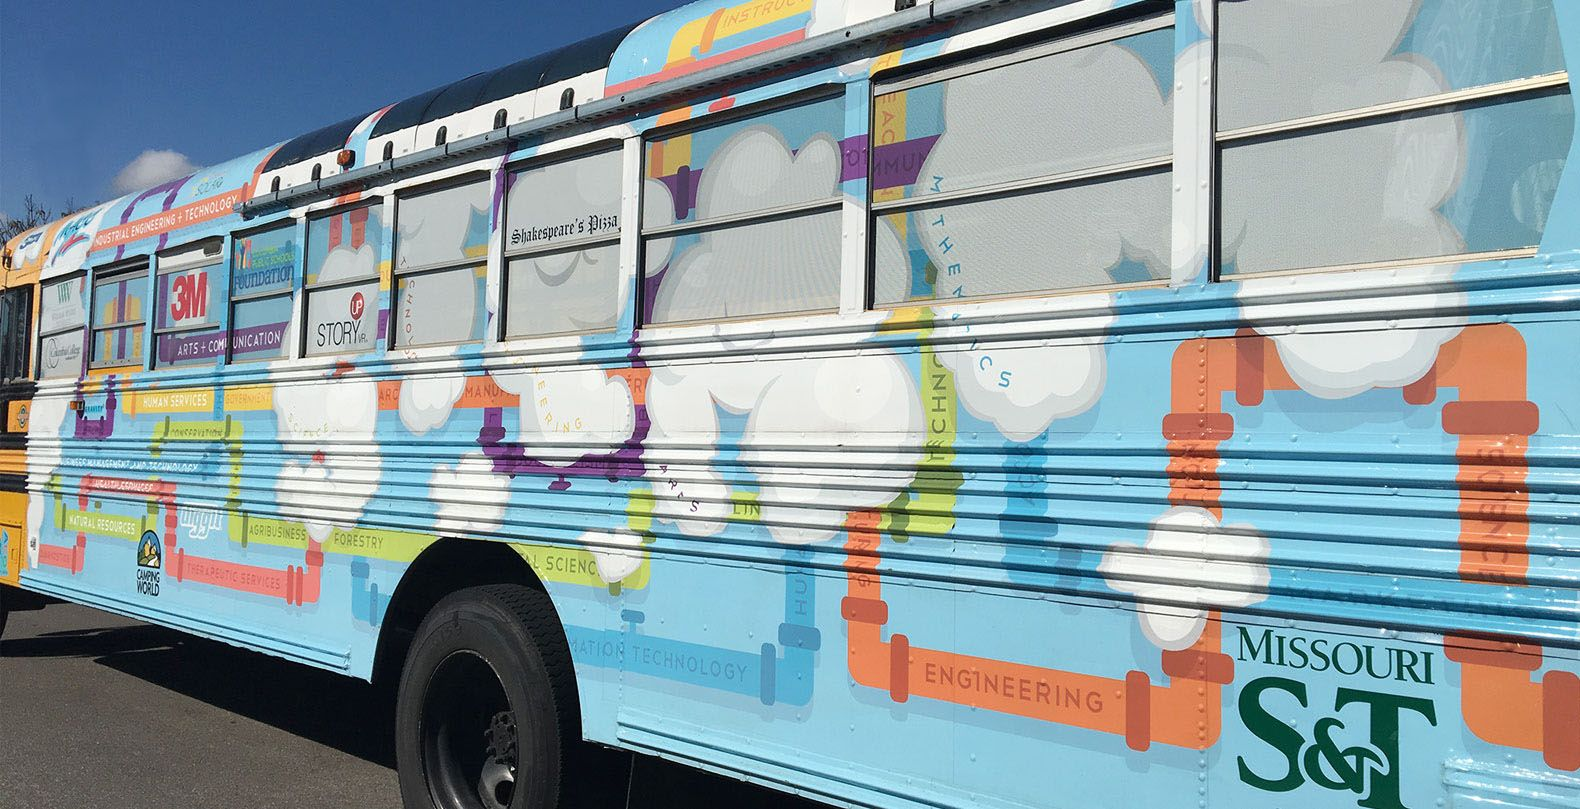 Columbia Public Schools' elementary and middle school students experiment with sound waves and code robots aboard their maker bus.